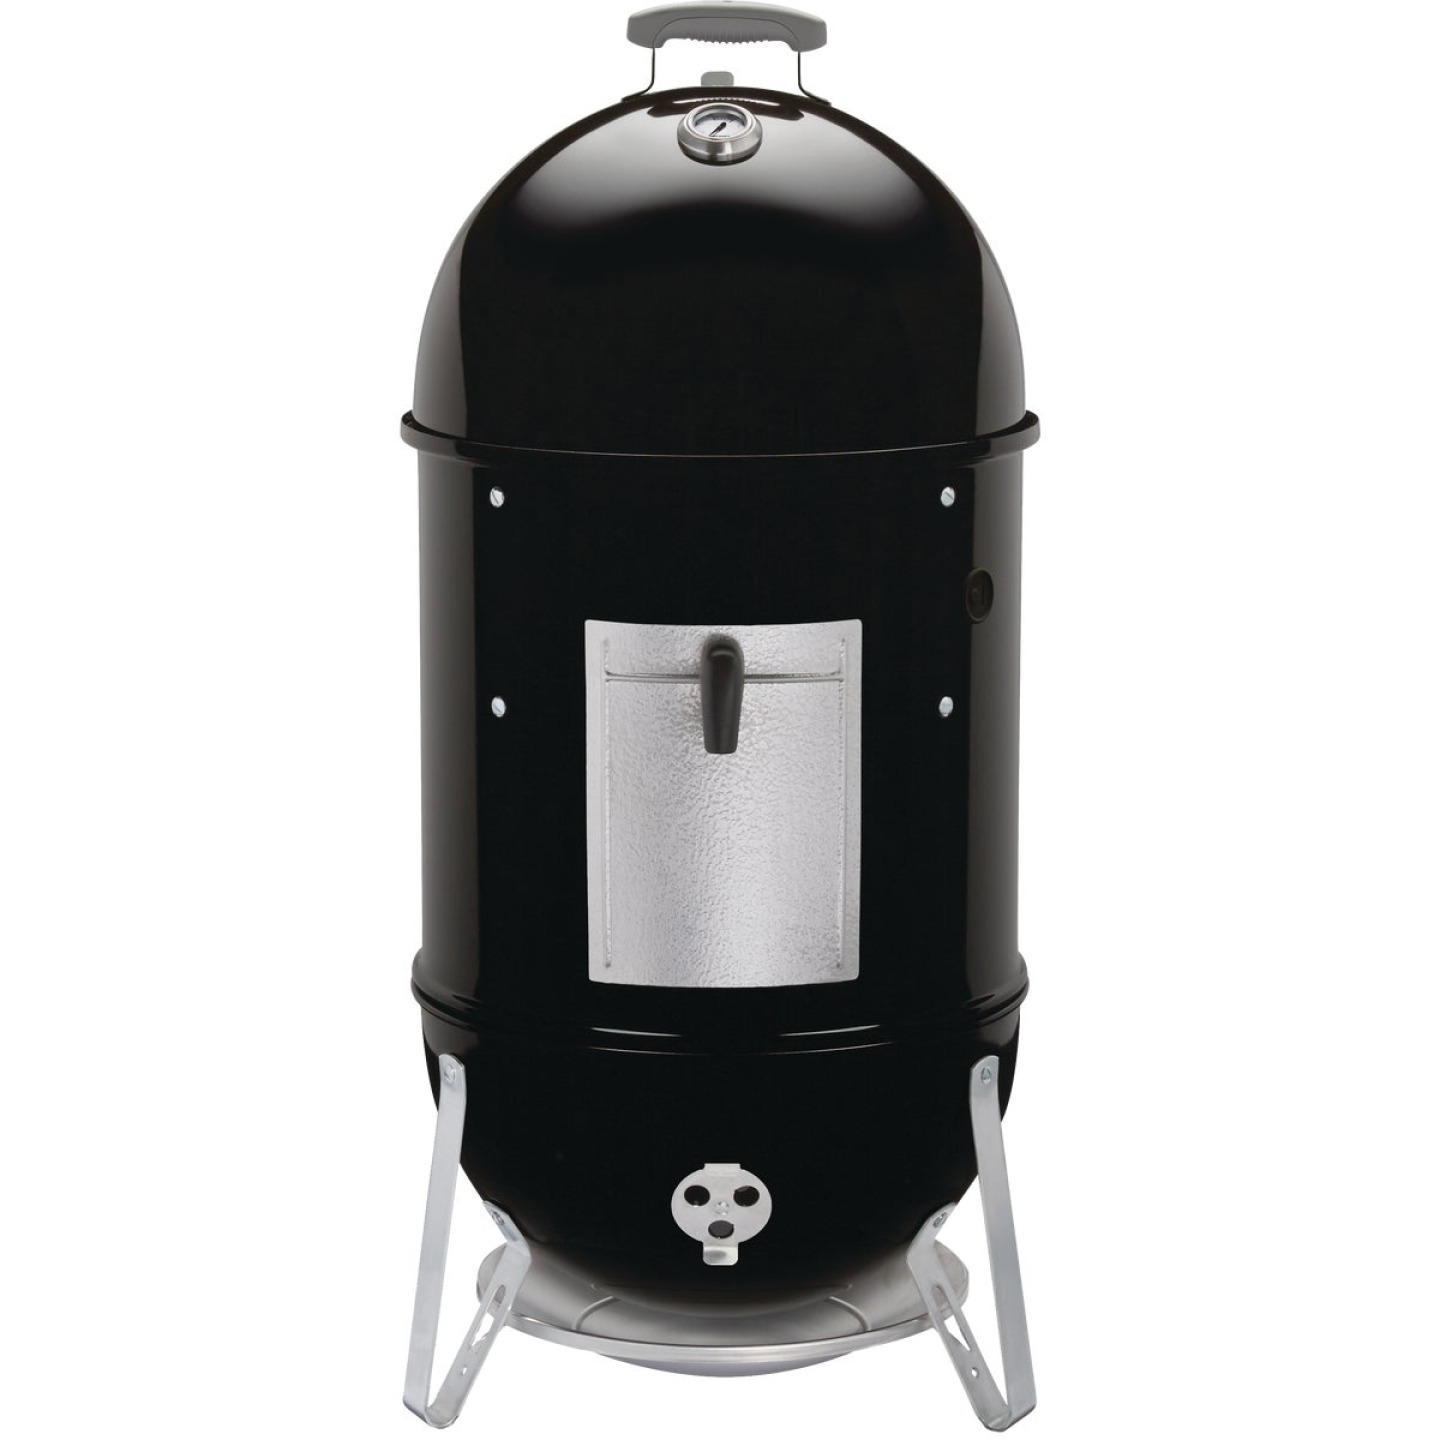 Weber Smokey Mountain Cooker 18 In. Dia. 481 Sq. In. Vertical Charcoal Smoker Image 8